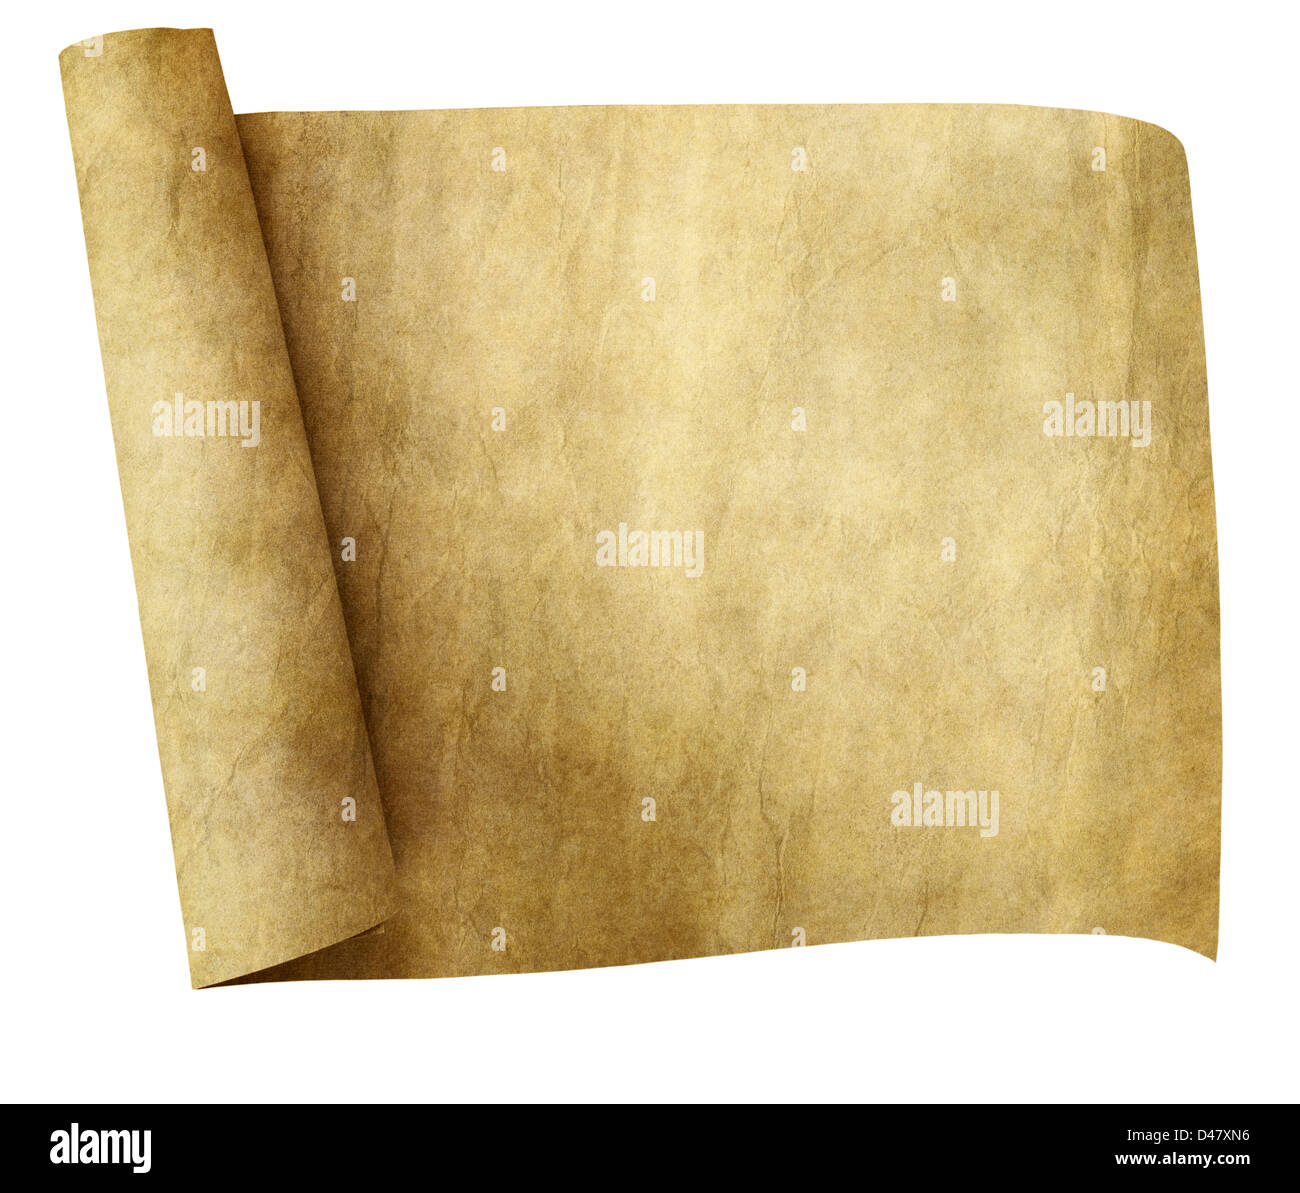 old parchment paper scroll isolated on white background - Stock Image